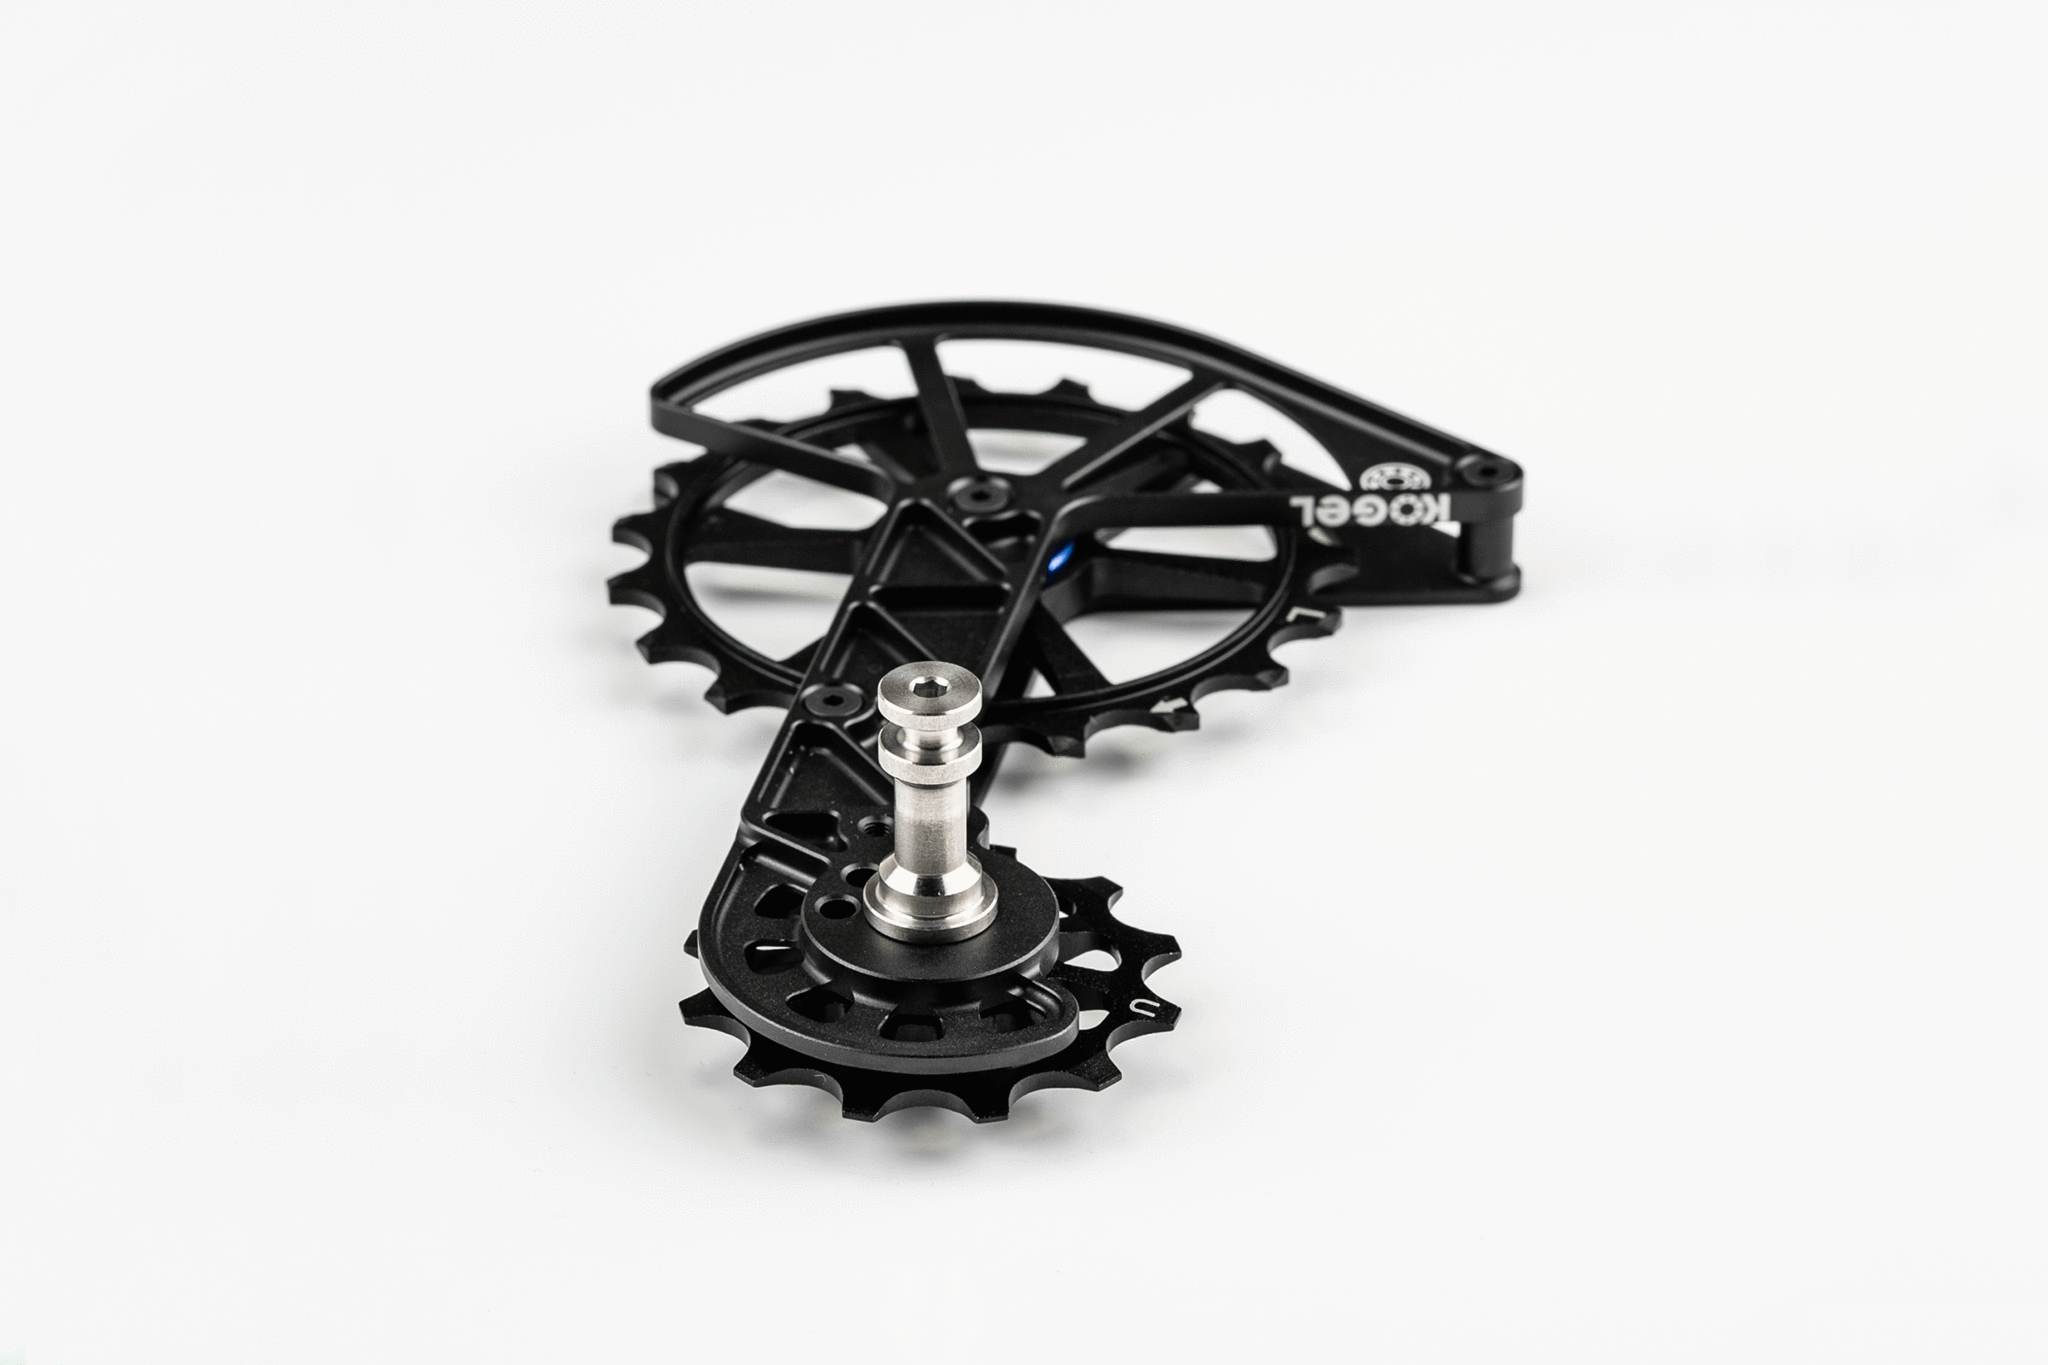 Kolossos Oversized Derailleur Cage for Shimano GRX and Ultegra RX800 - Black